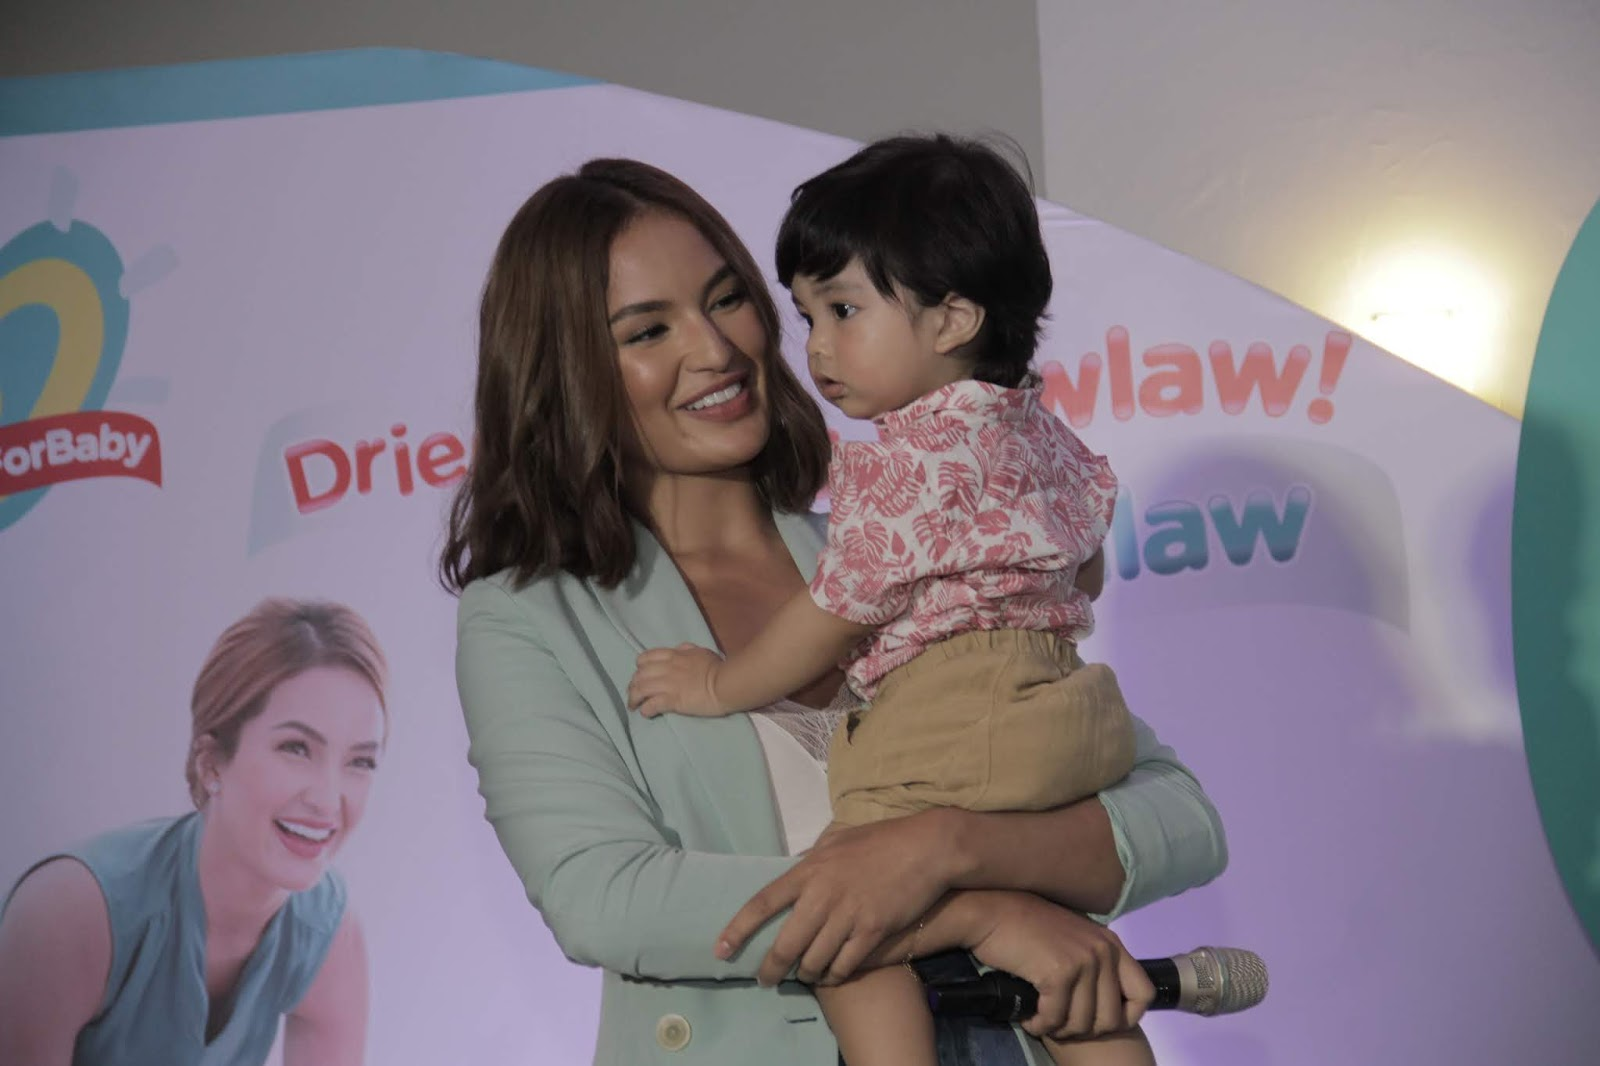 Pampers Launches the #BetterForBaby Advocacy to Support